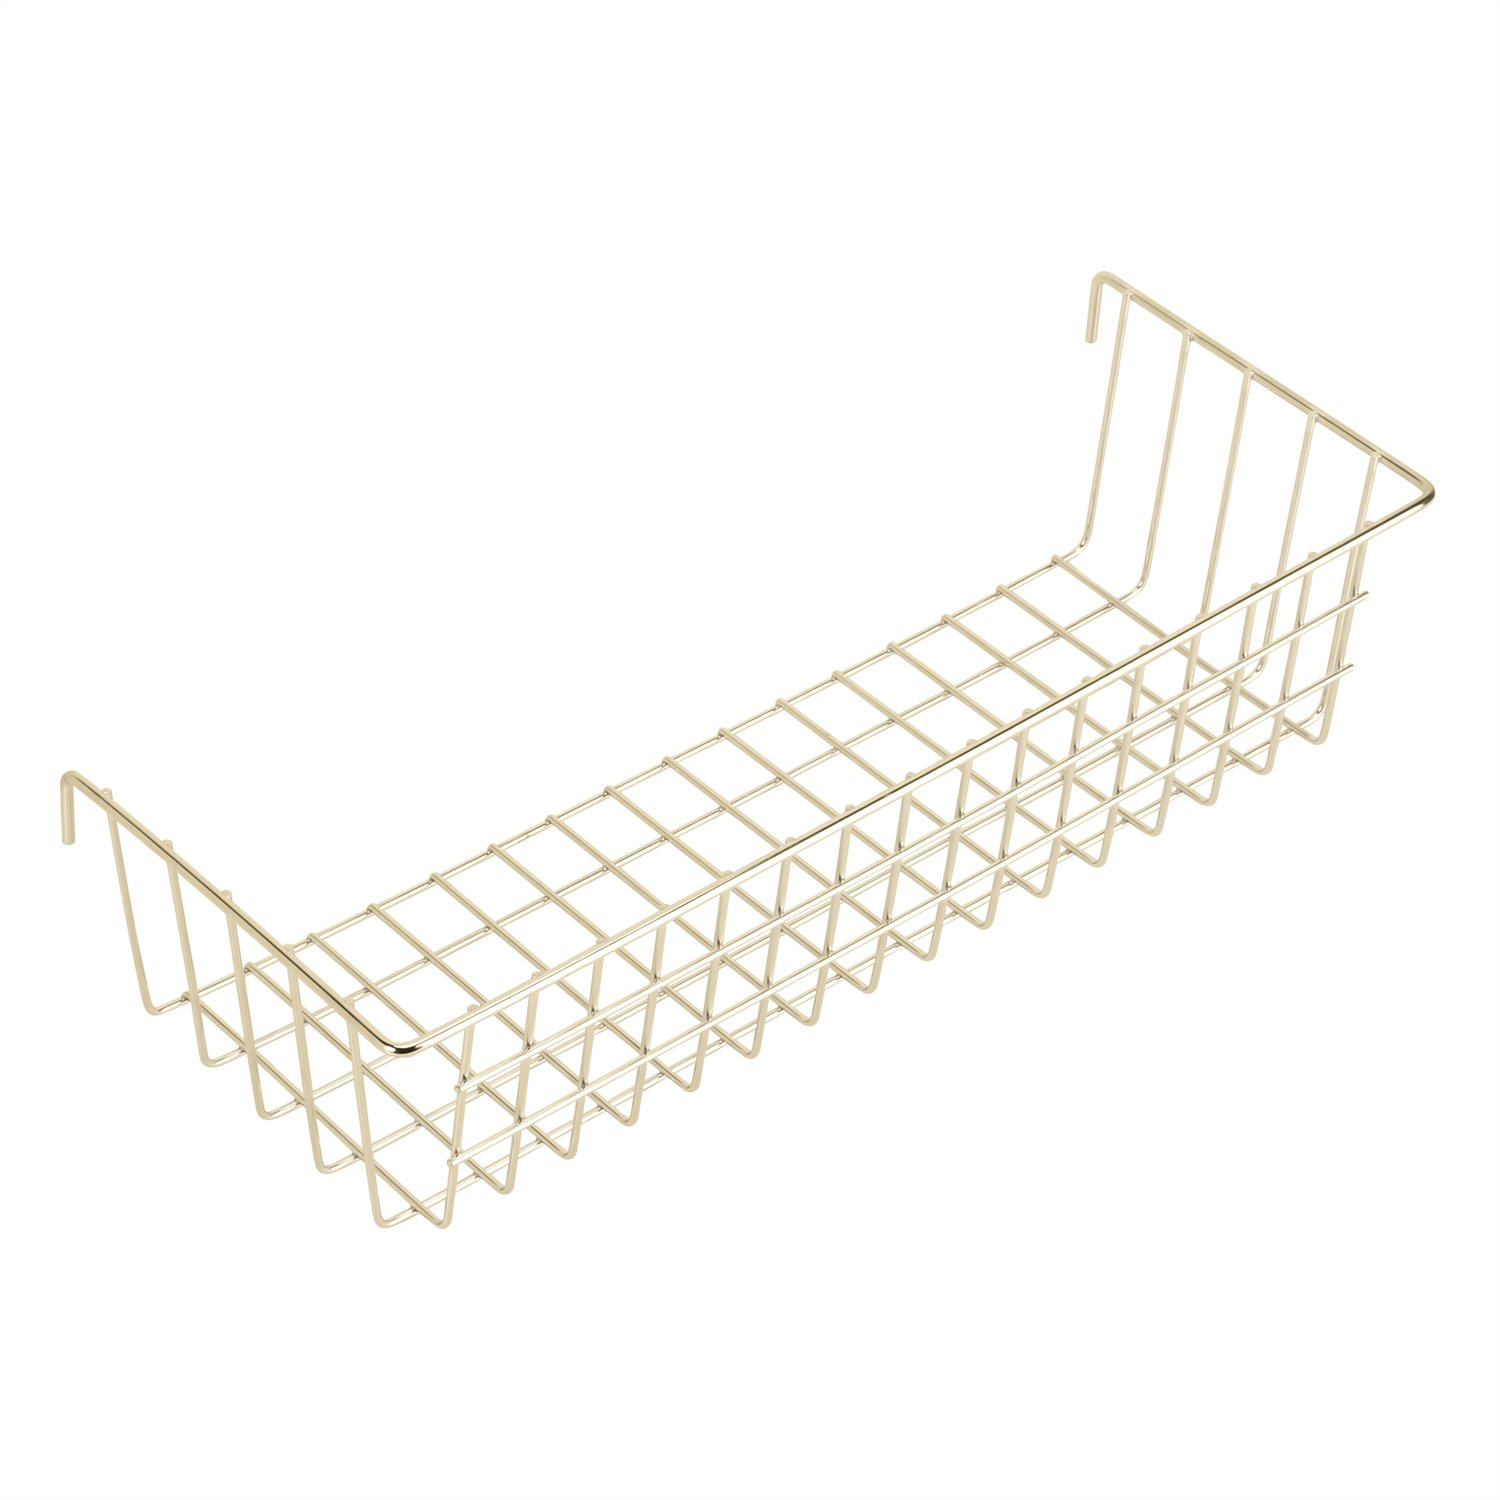 Hosal Gold Hanging Basket for Wire Wall Grid Panel, Multifunction Wall Storage Display Decorative Basket, Size 14.6''x5.1''x3.9''